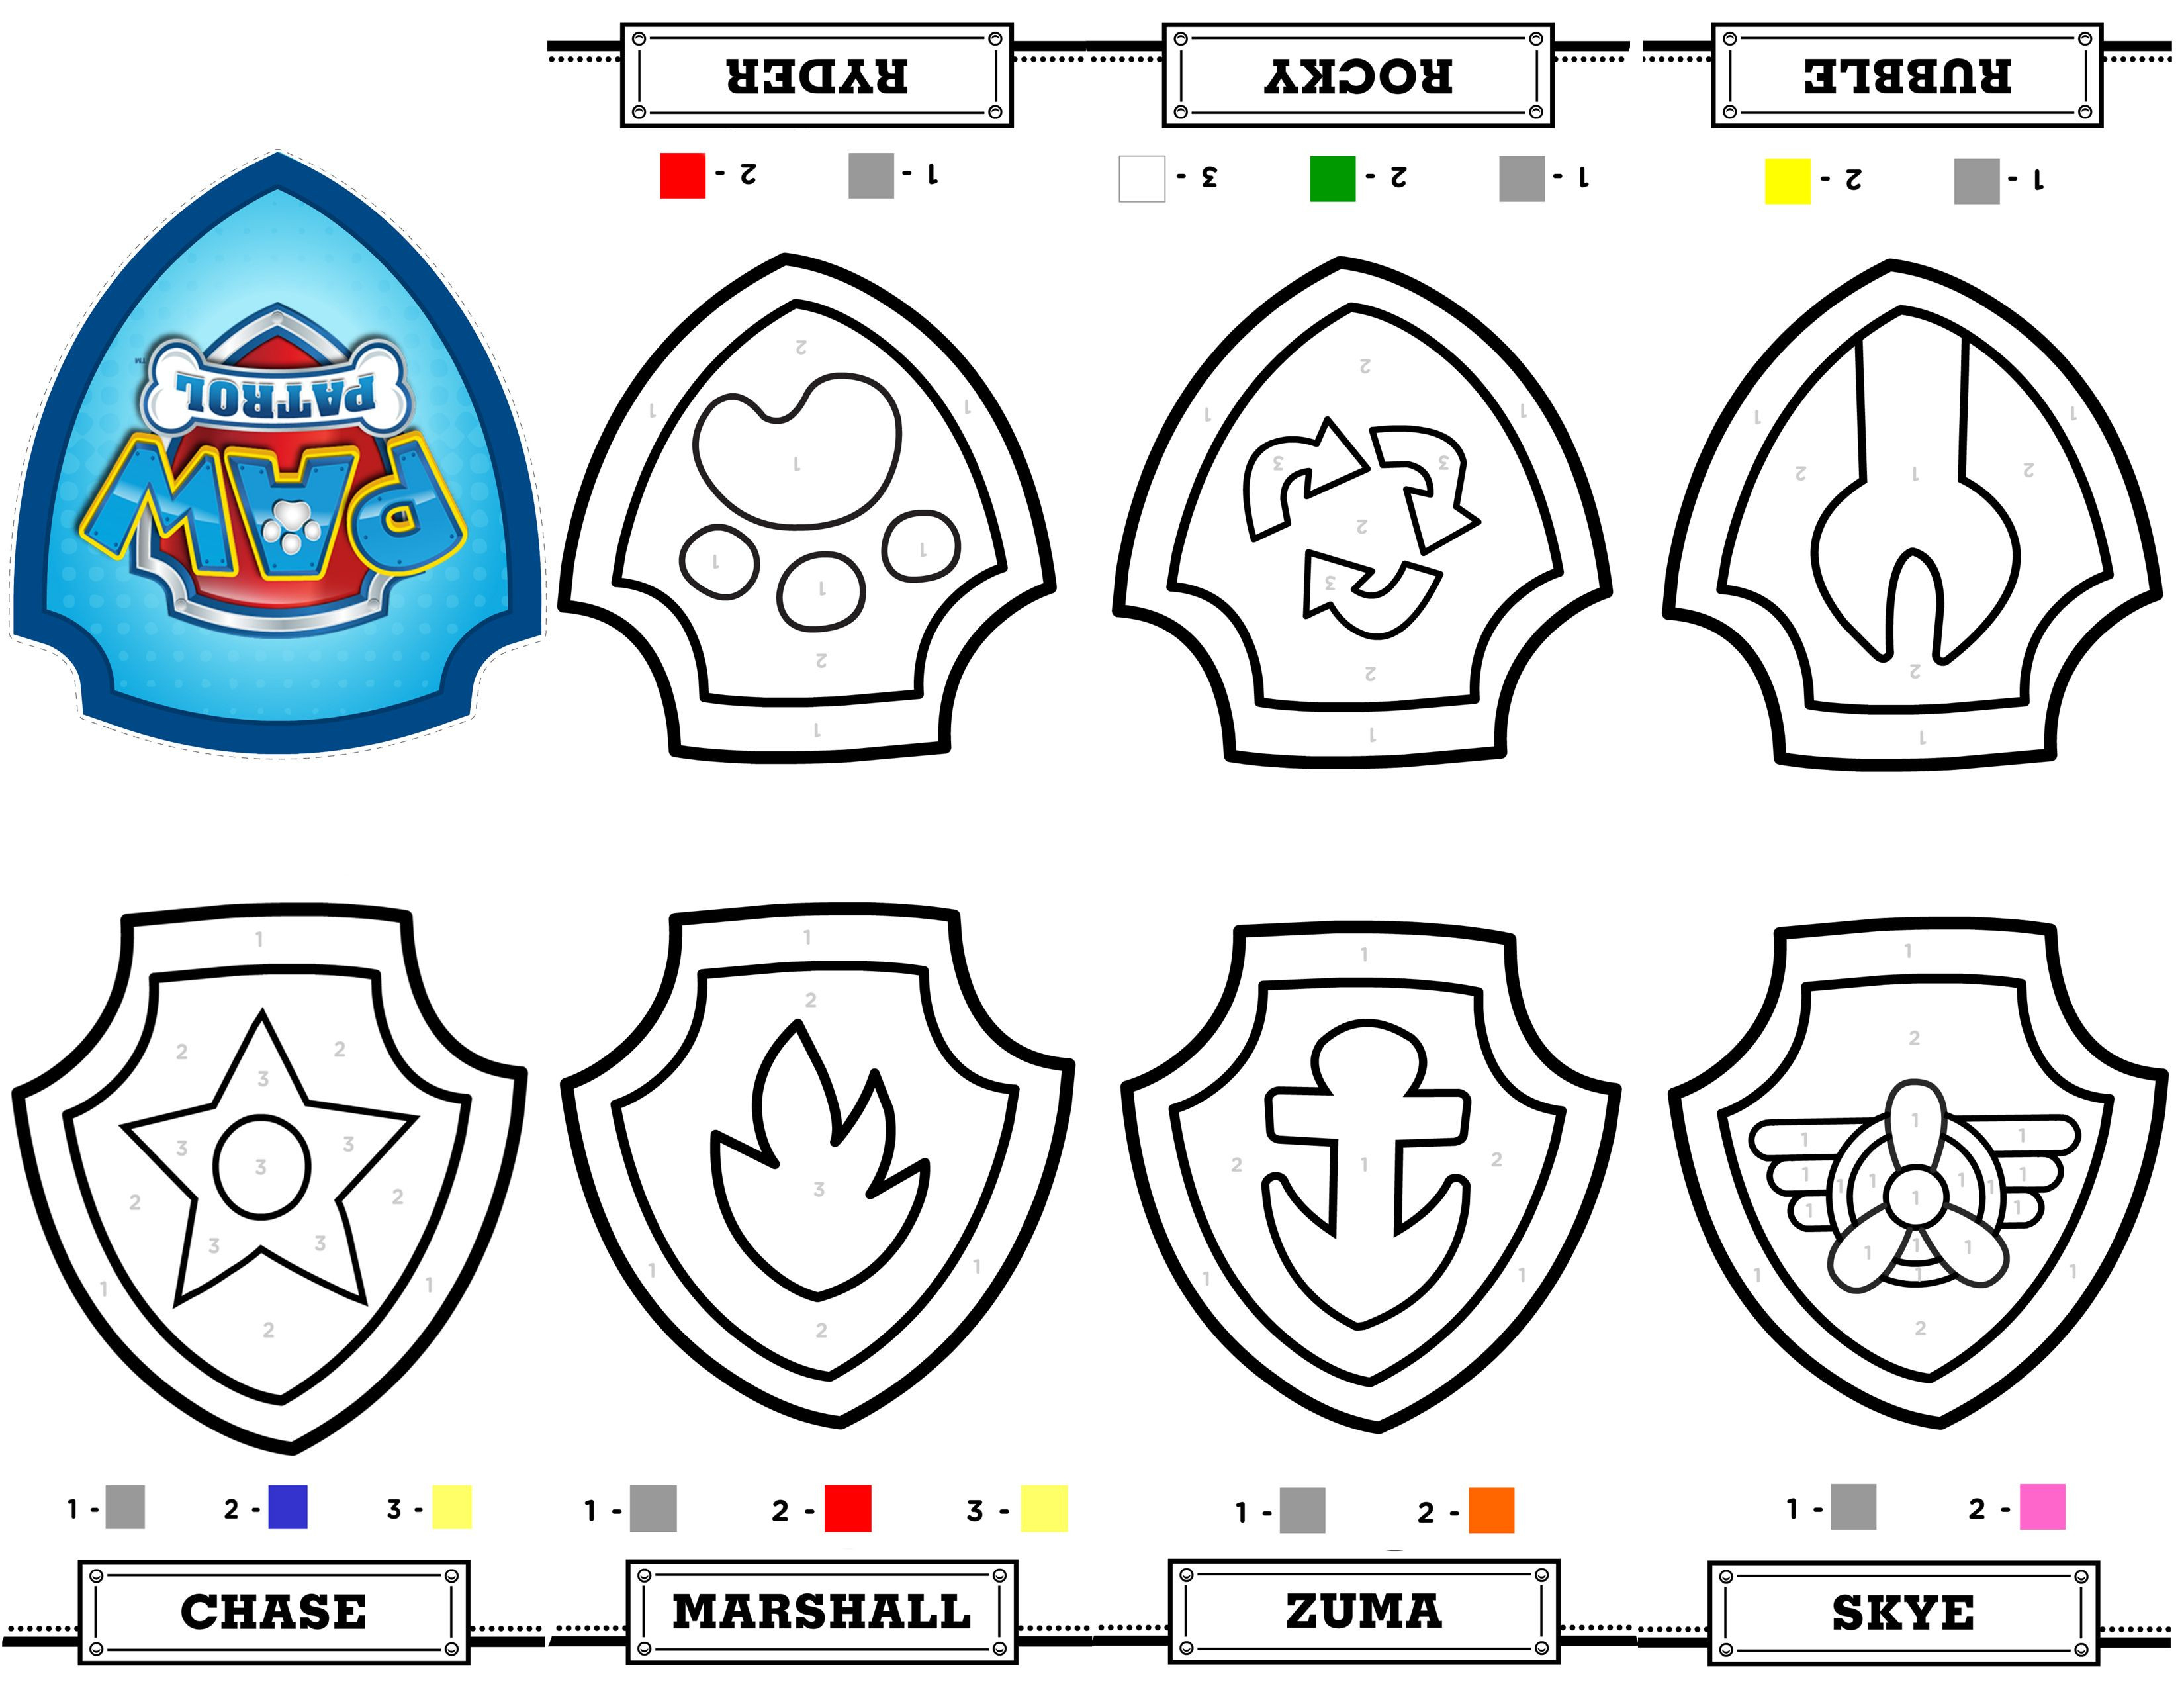 Free Printable Mini Paw Patrol Coloring Book From A Single Sheet Of - Free Printable Badges